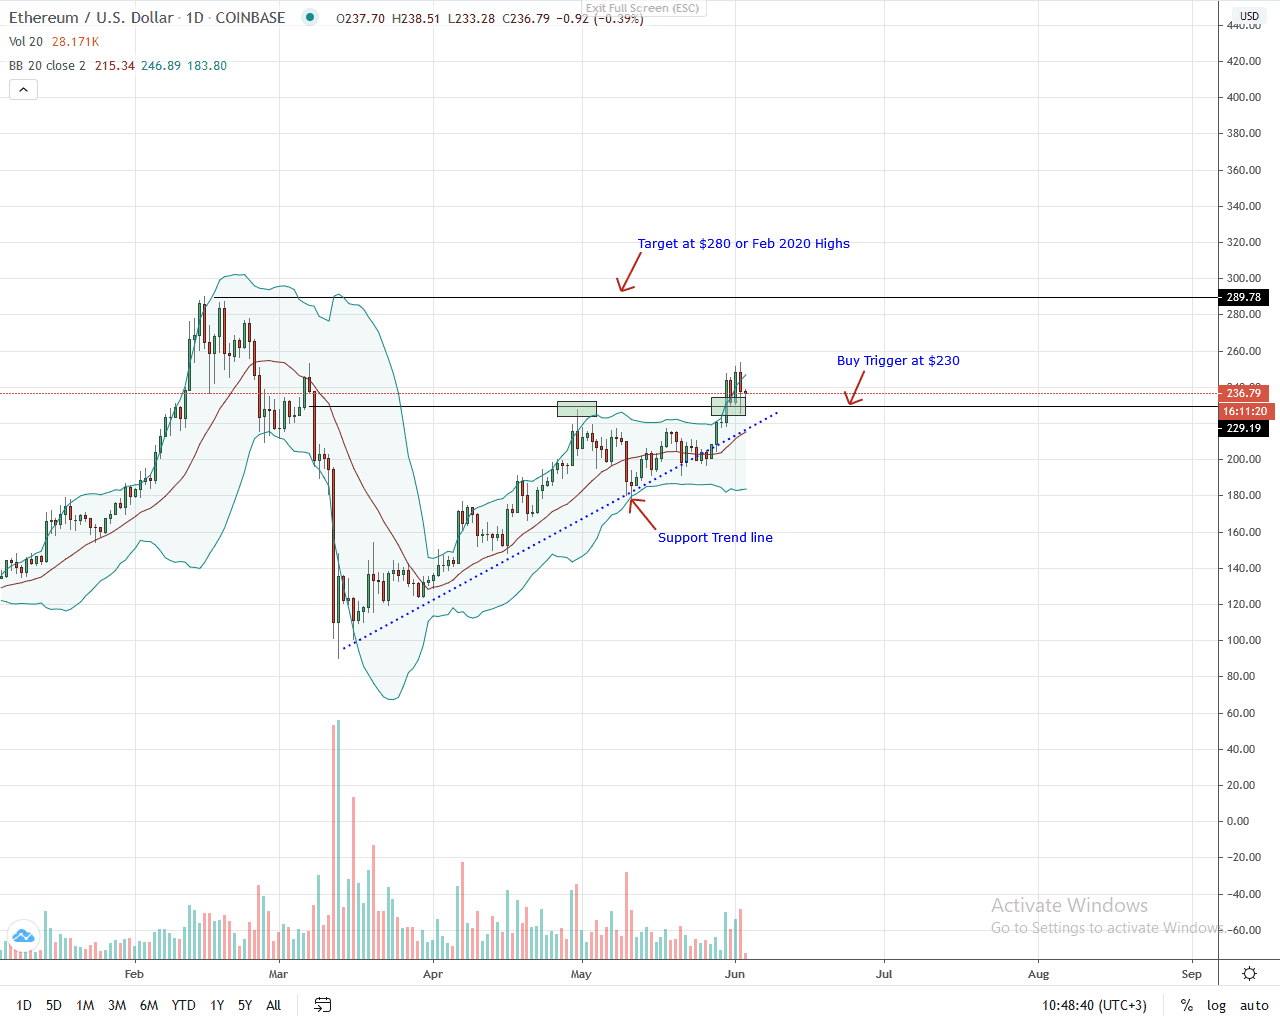 Ethereum Daily Chart for June 3